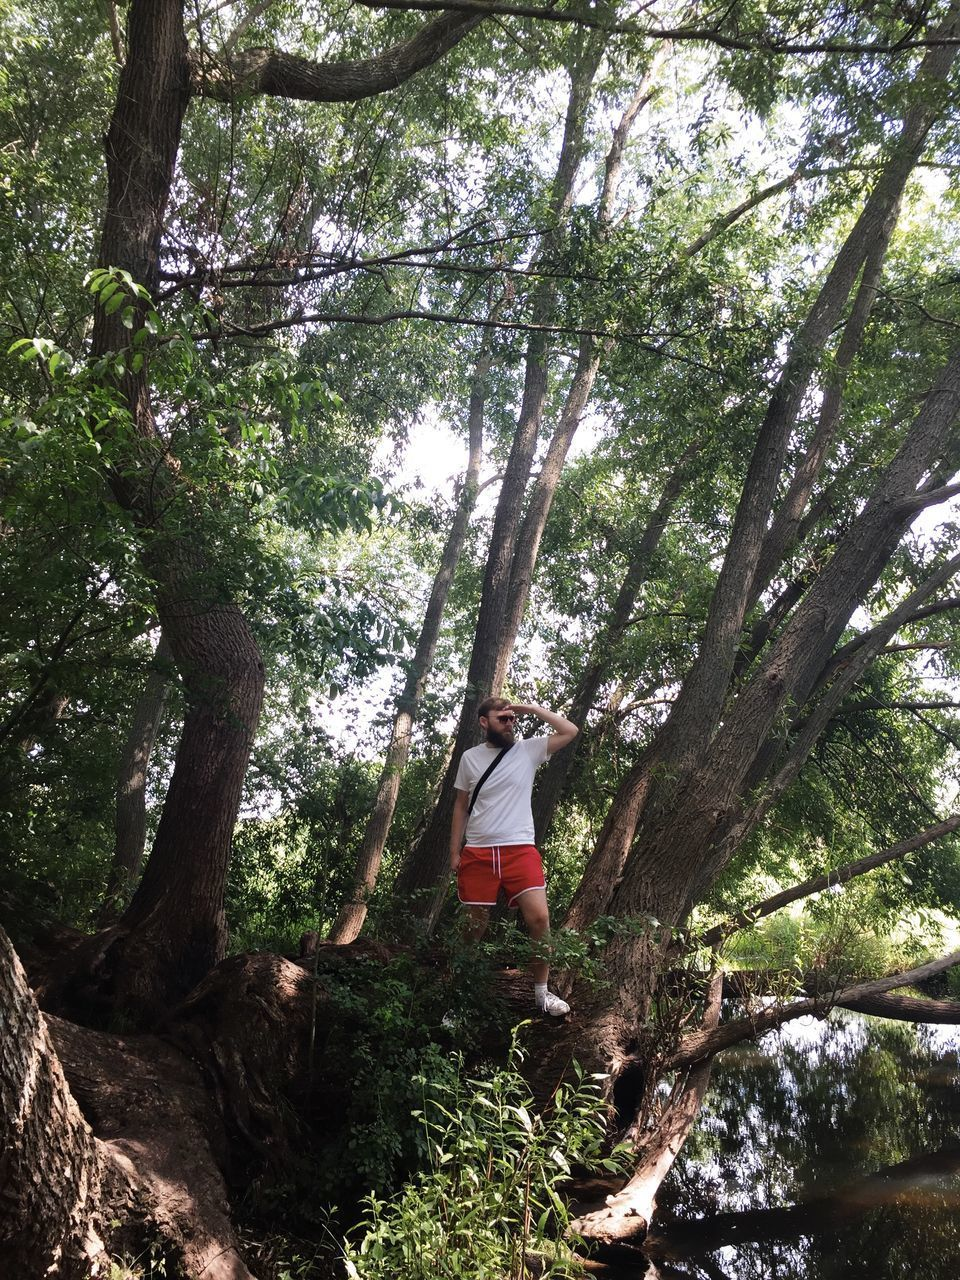 LOW ANGLE VIEW OF WOMAN STANDING BY TREE IN FOREST